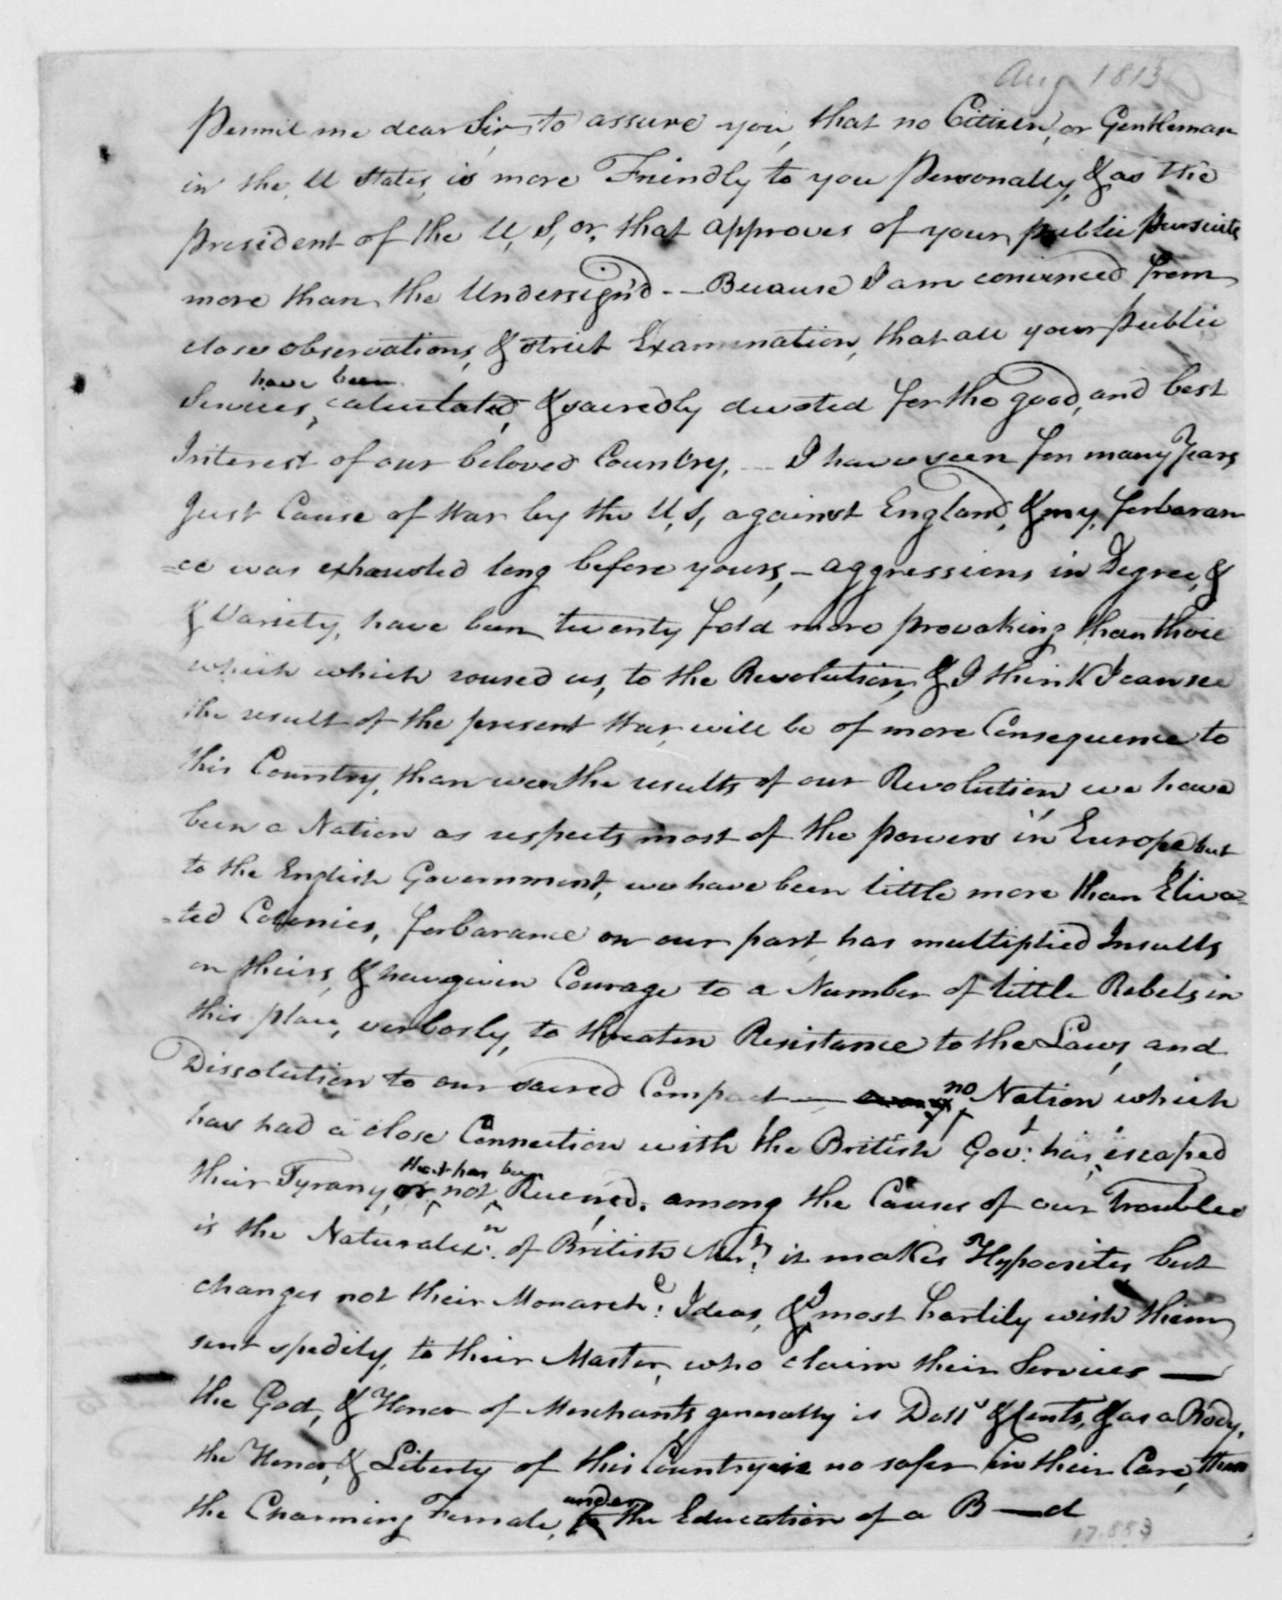 John Page to James Madison, August 4, 1813.